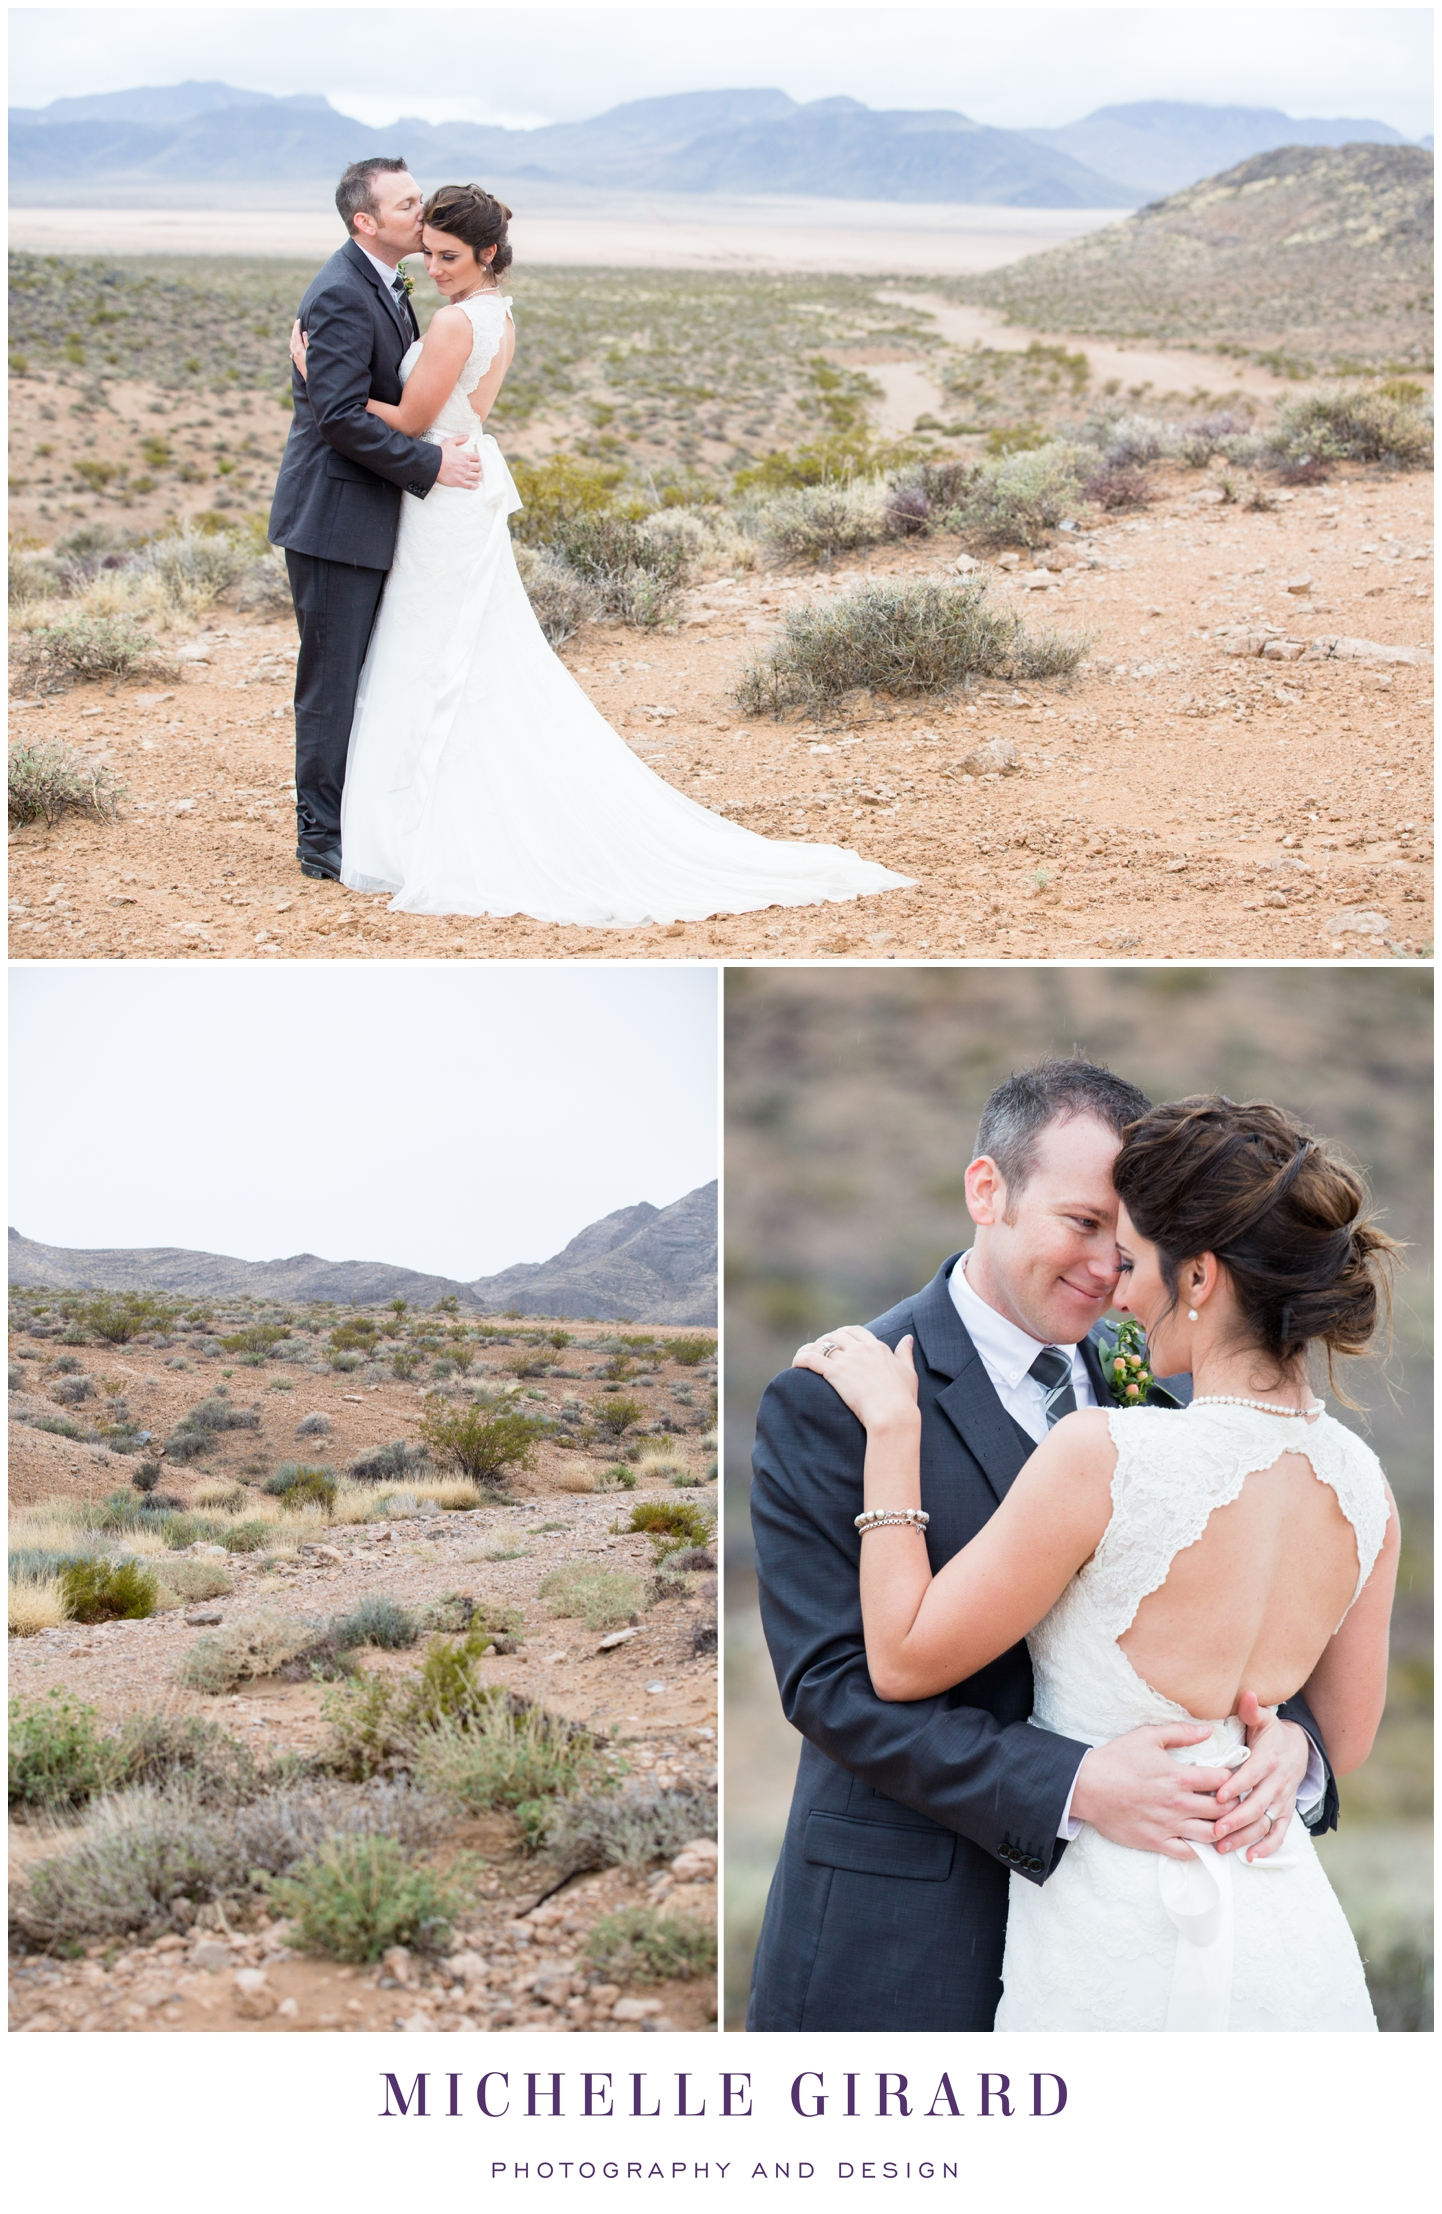 las-vegas-desert-wedding-bride-groom-photography-nevada-michelle-girard-06.jpg